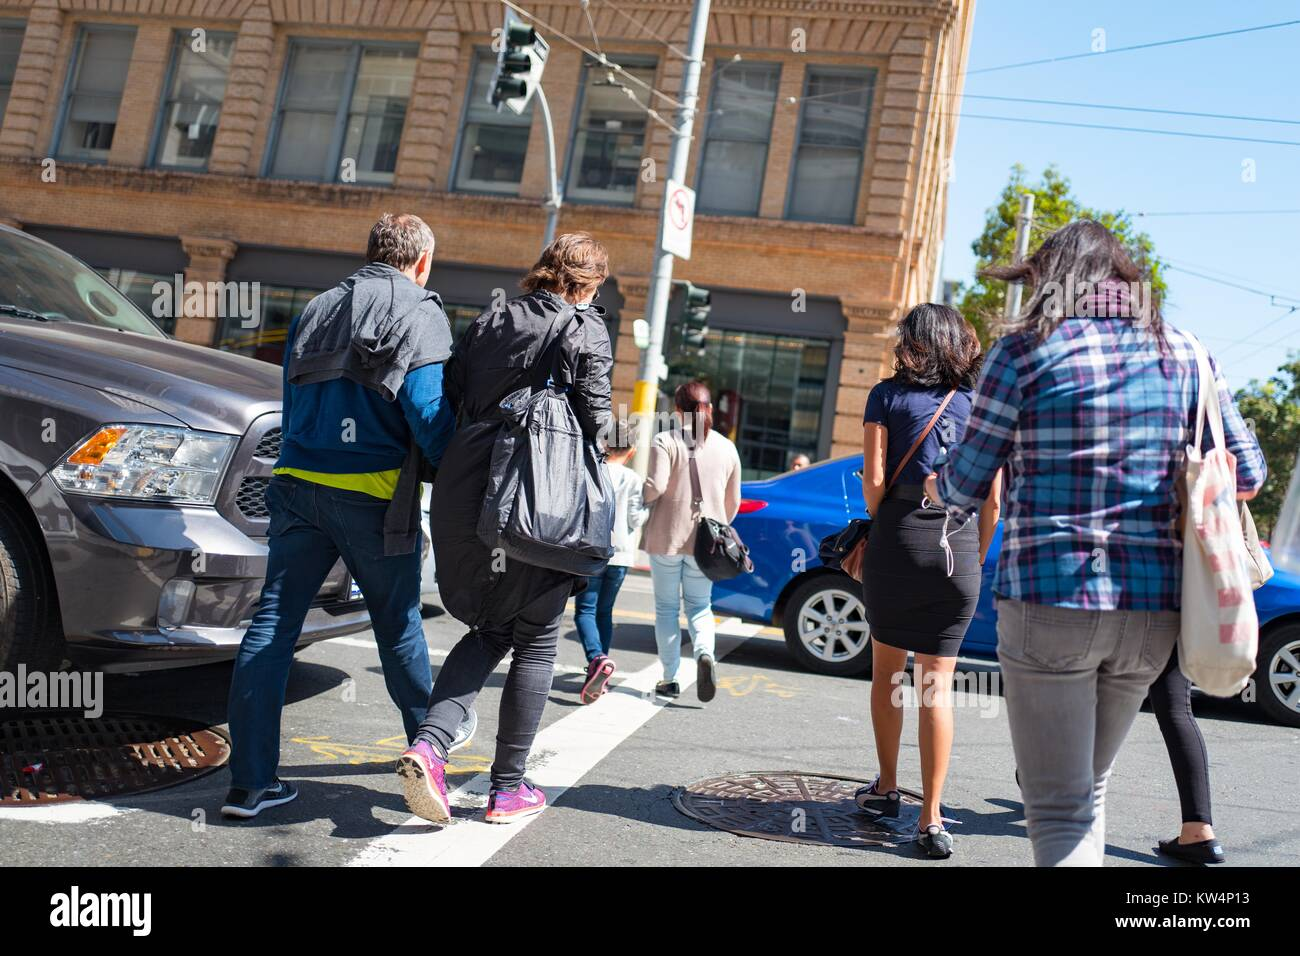 A group of people walk between cars to cross an intersection in San Francisco, California, September 4, 2016. - Stock Image